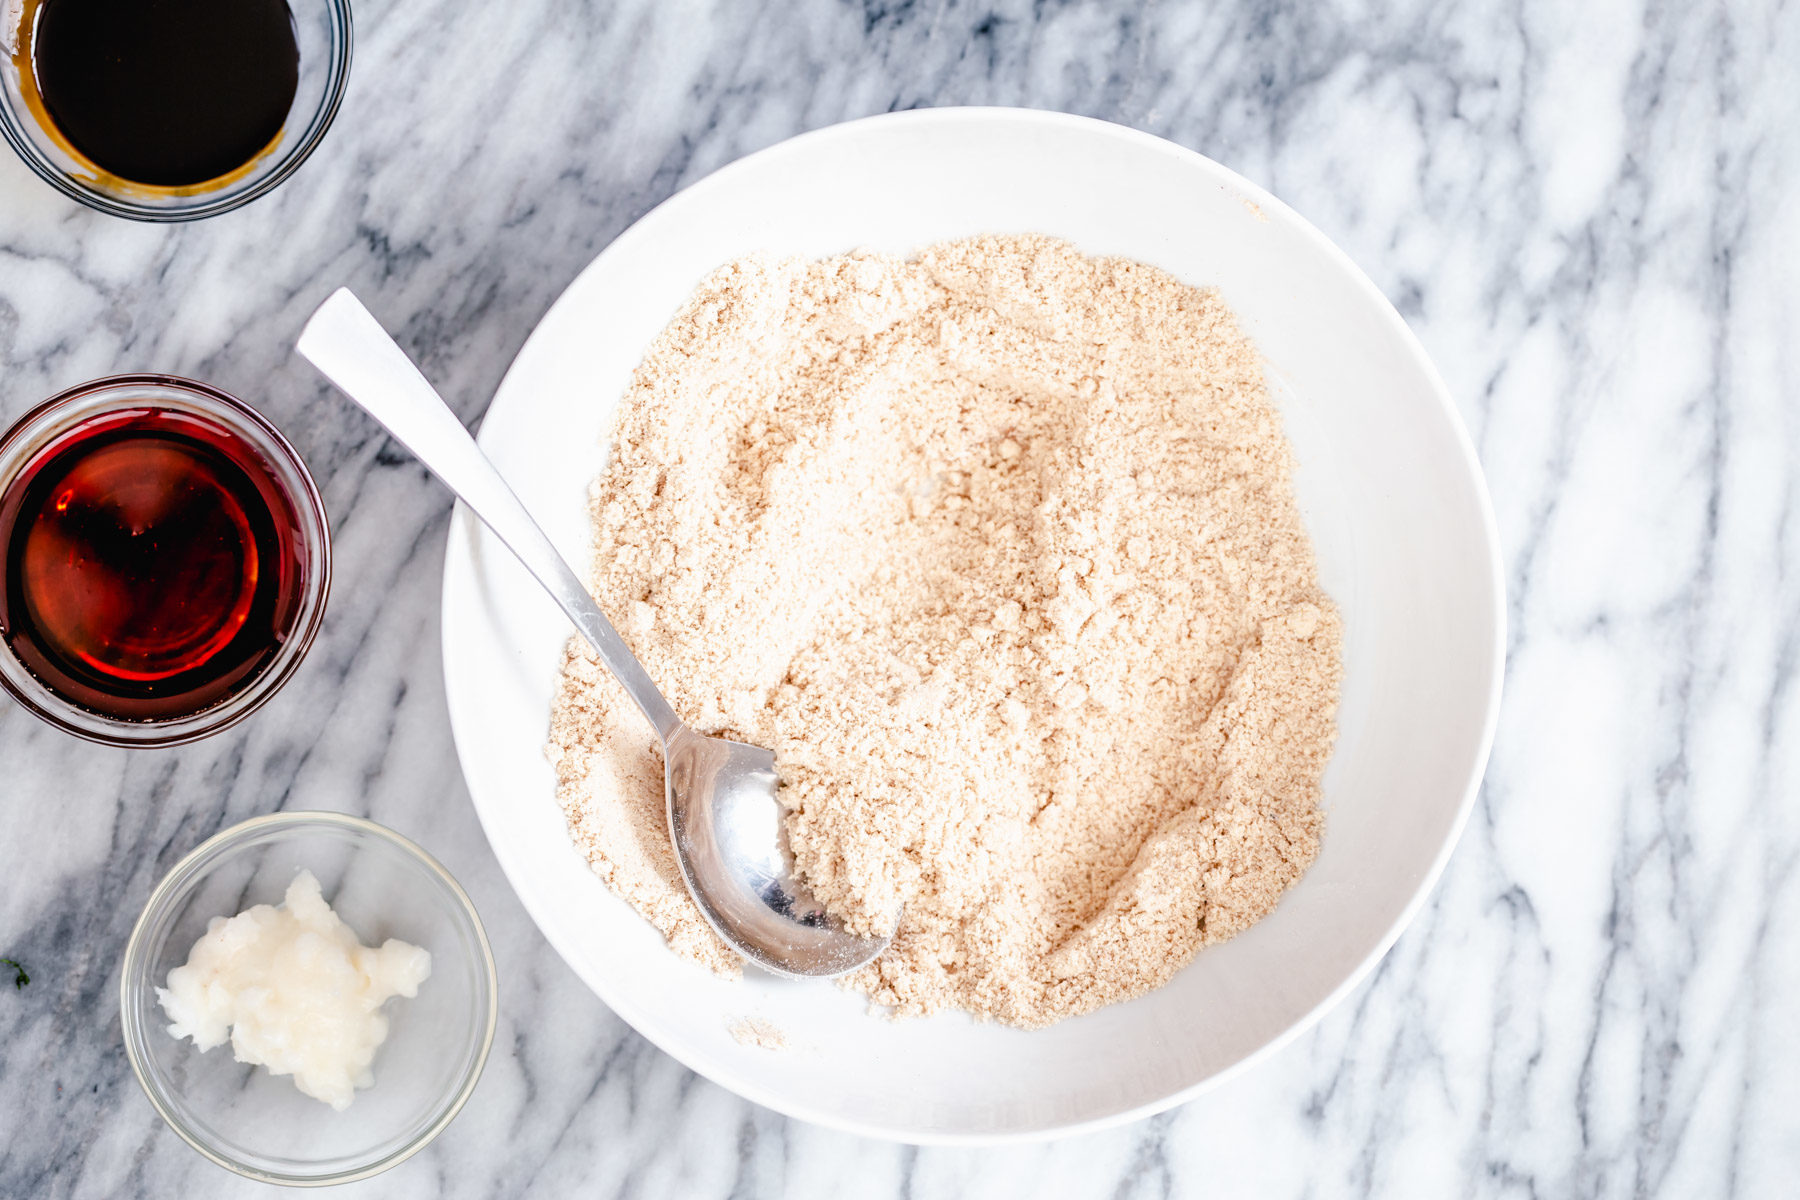 vegan gingerbread cookie batter mix in a small white bowl